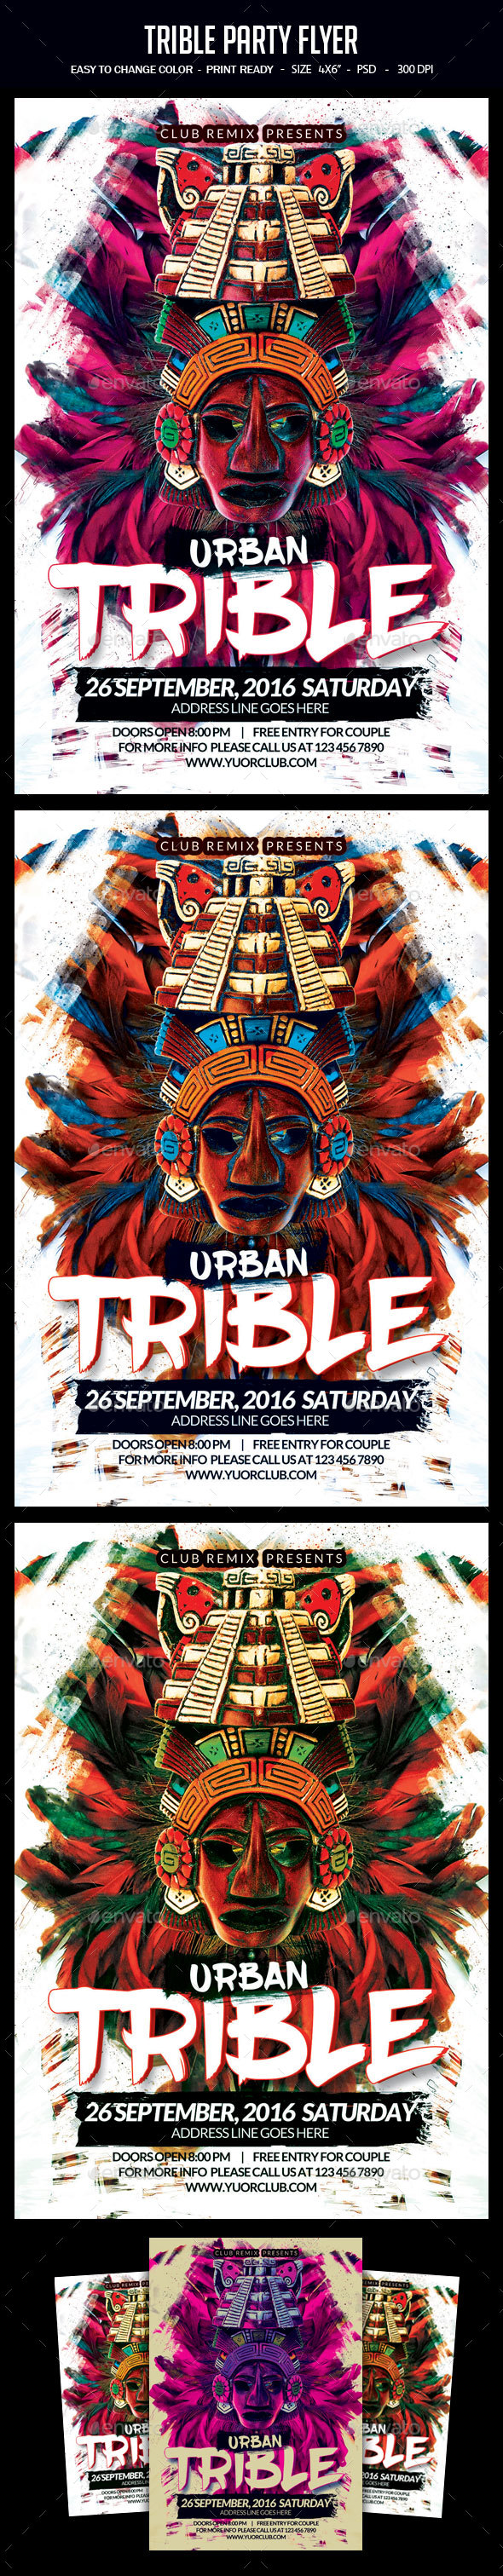 Trible Party Flyer - Clubs & Parties Events